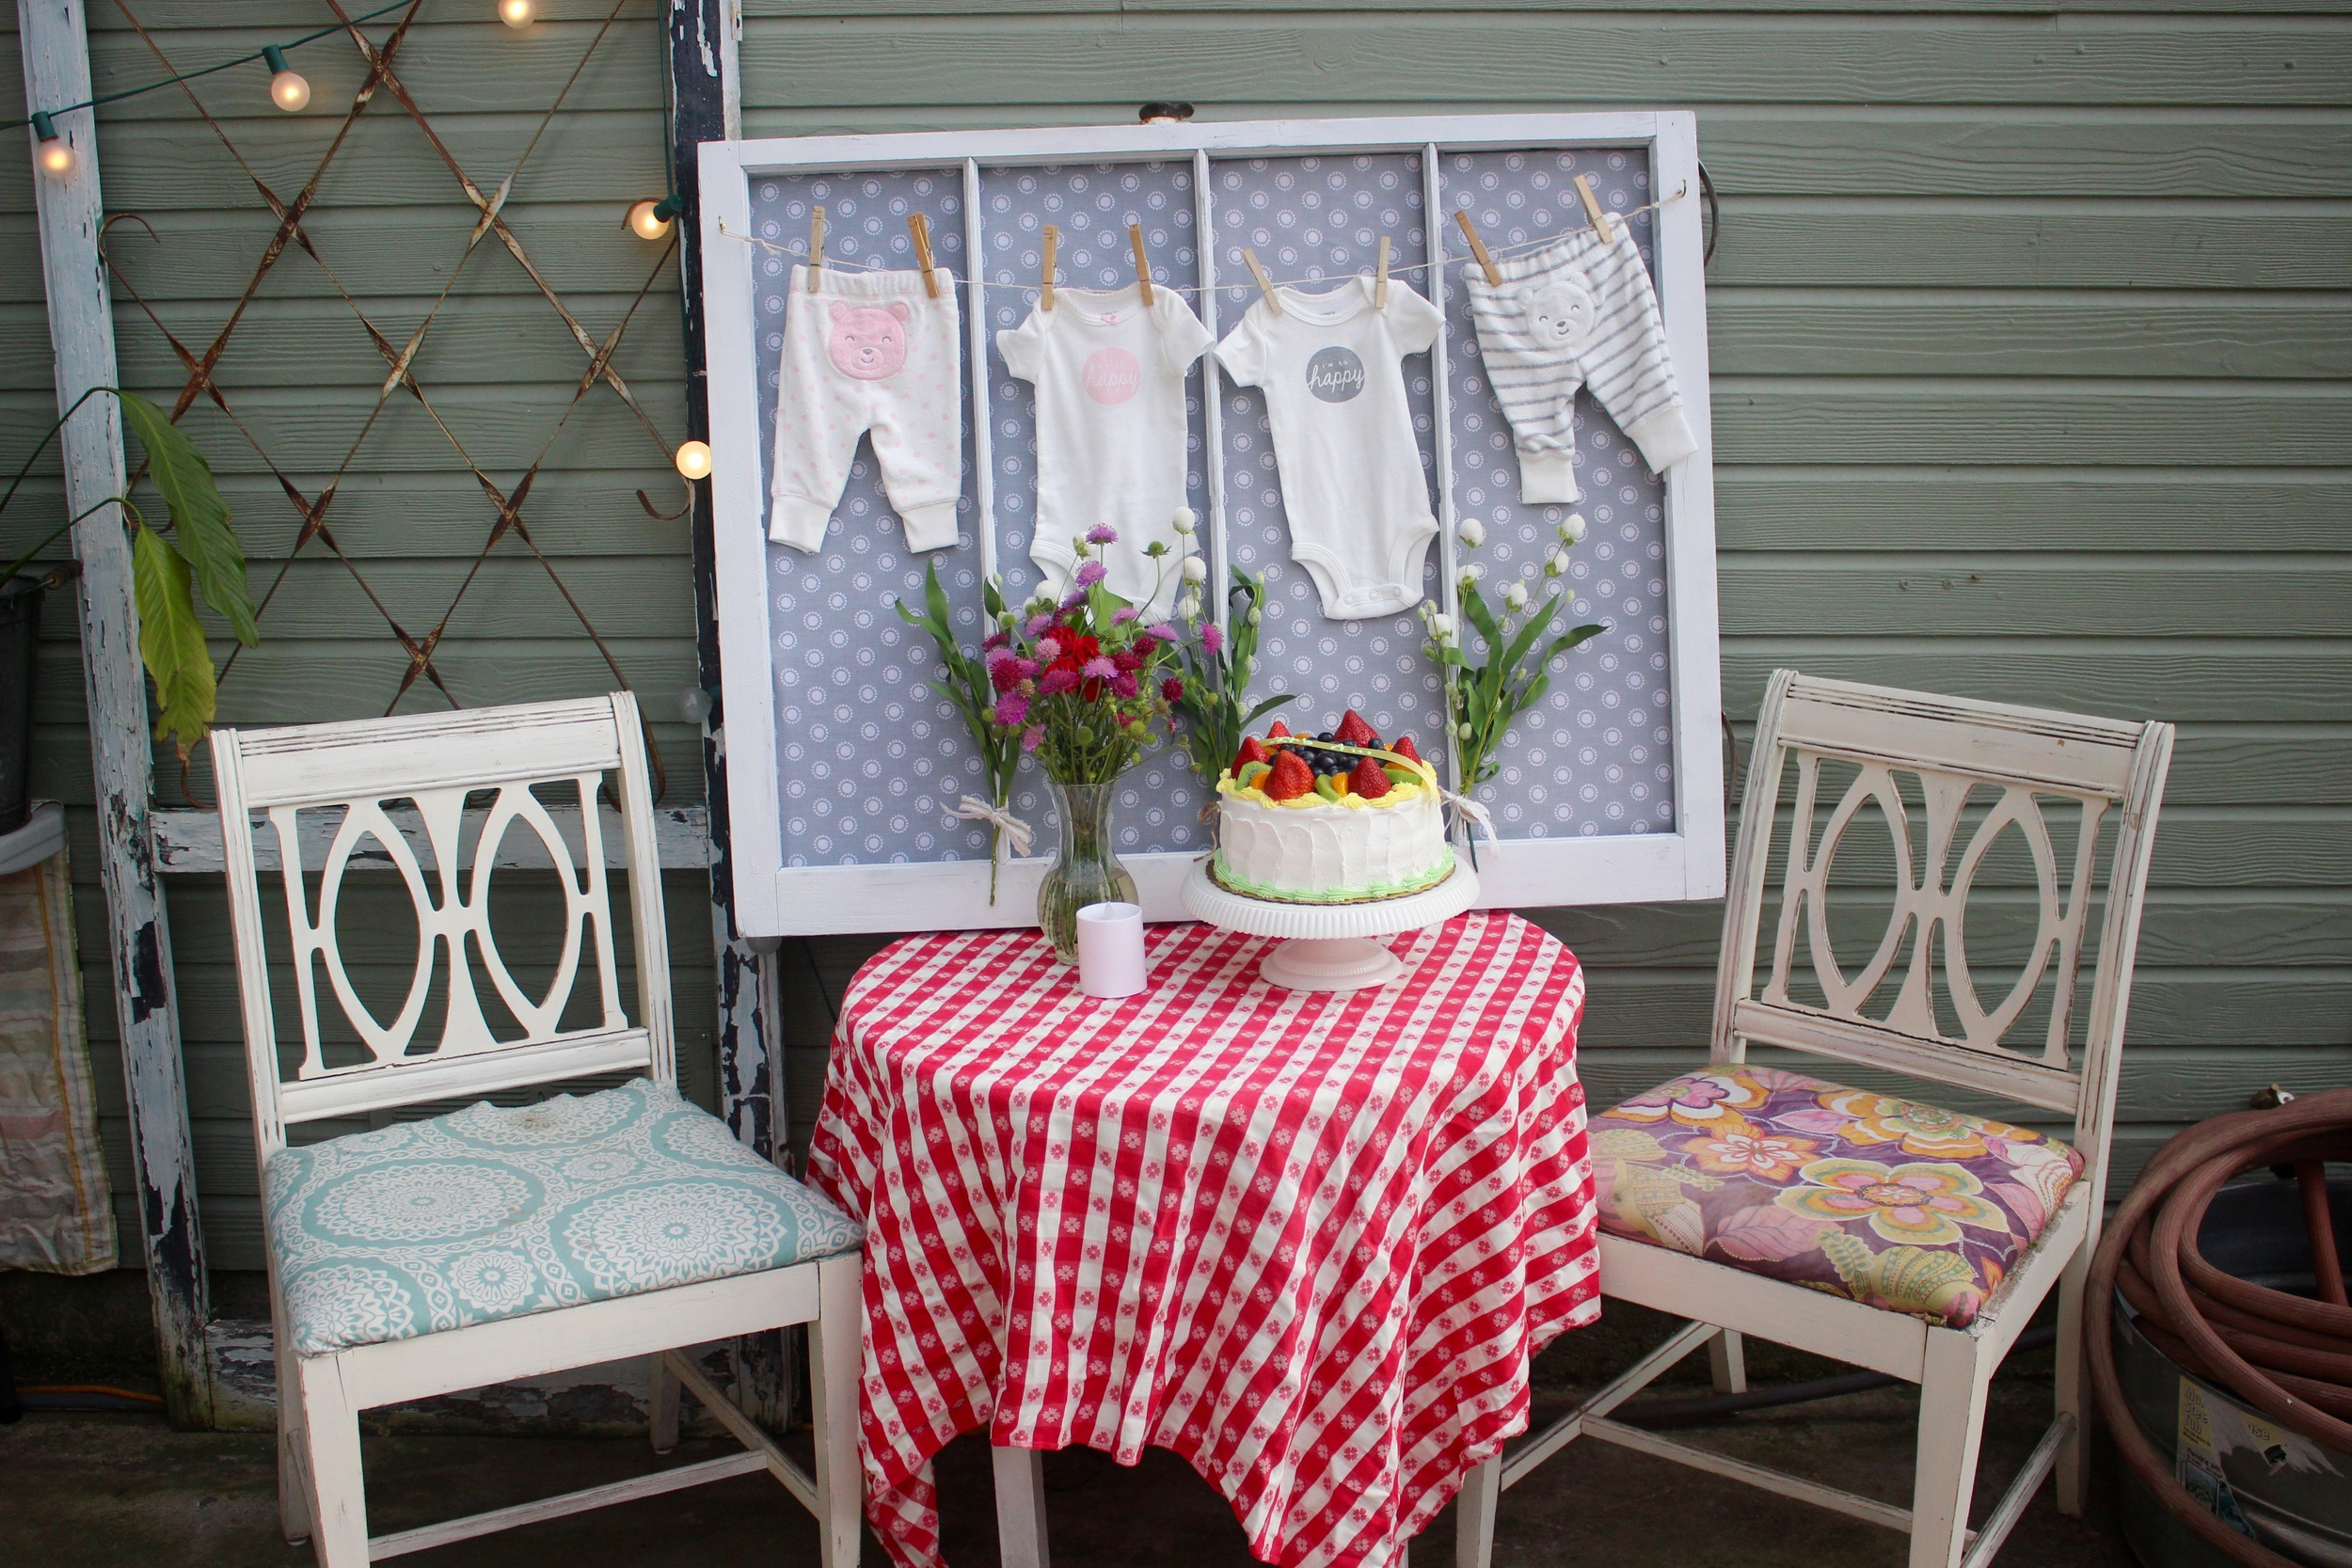 Simple backyard gender reveal party. Use an old window to display boy and girl onesies!